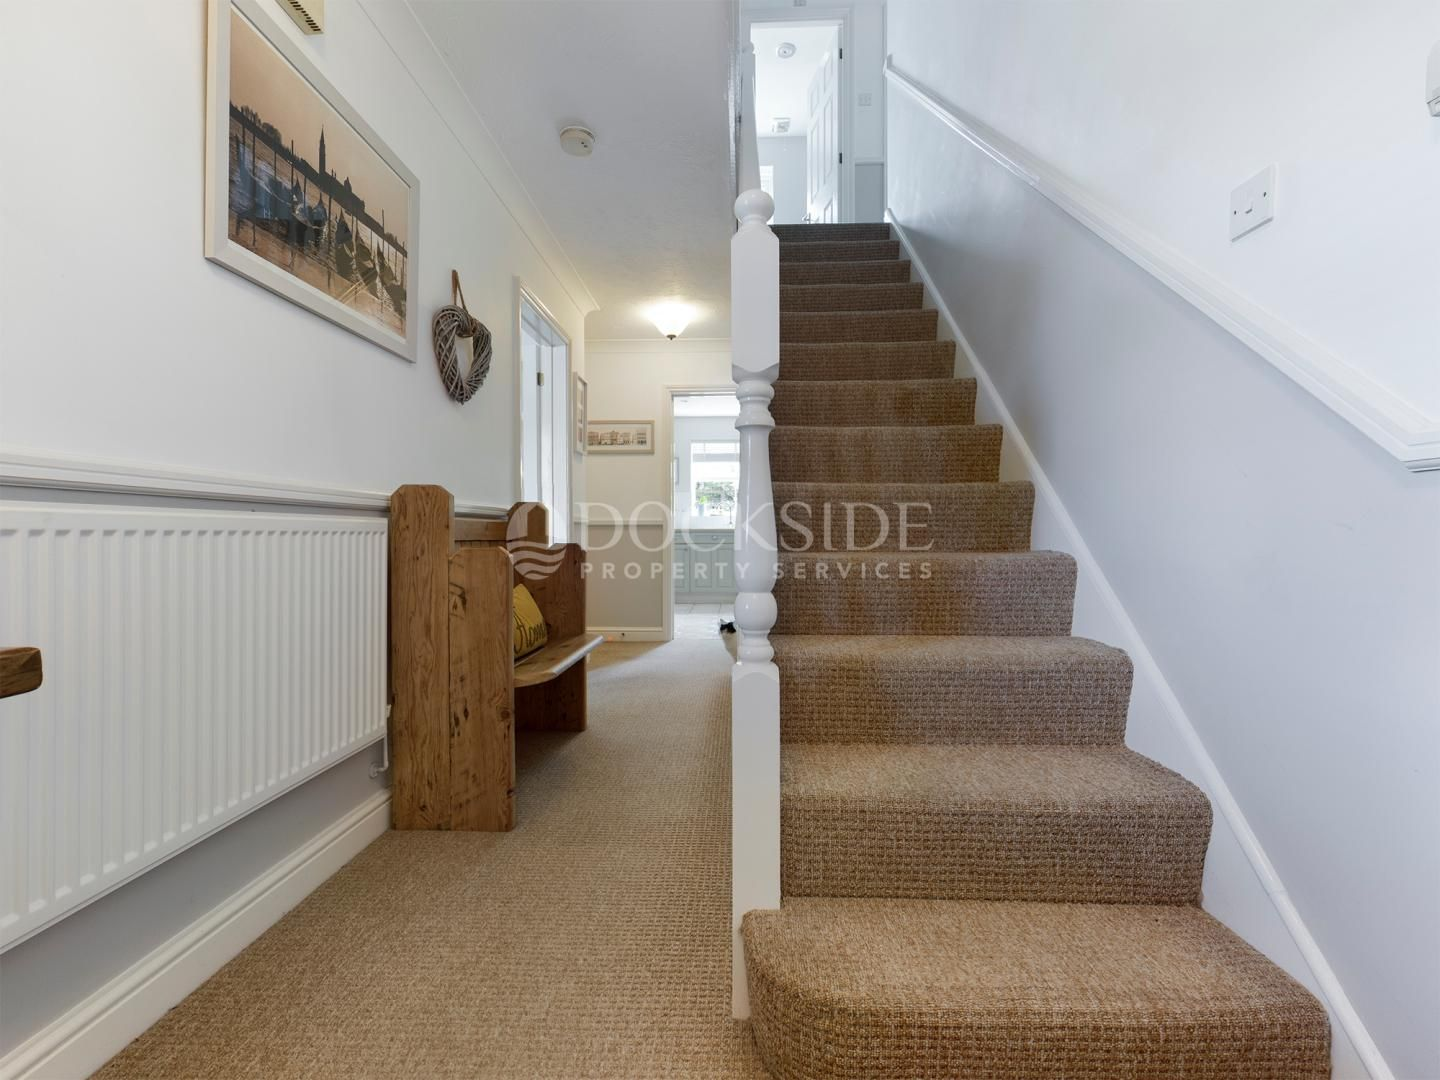 3 bed house for sale in Haven Way  - Property Image 5